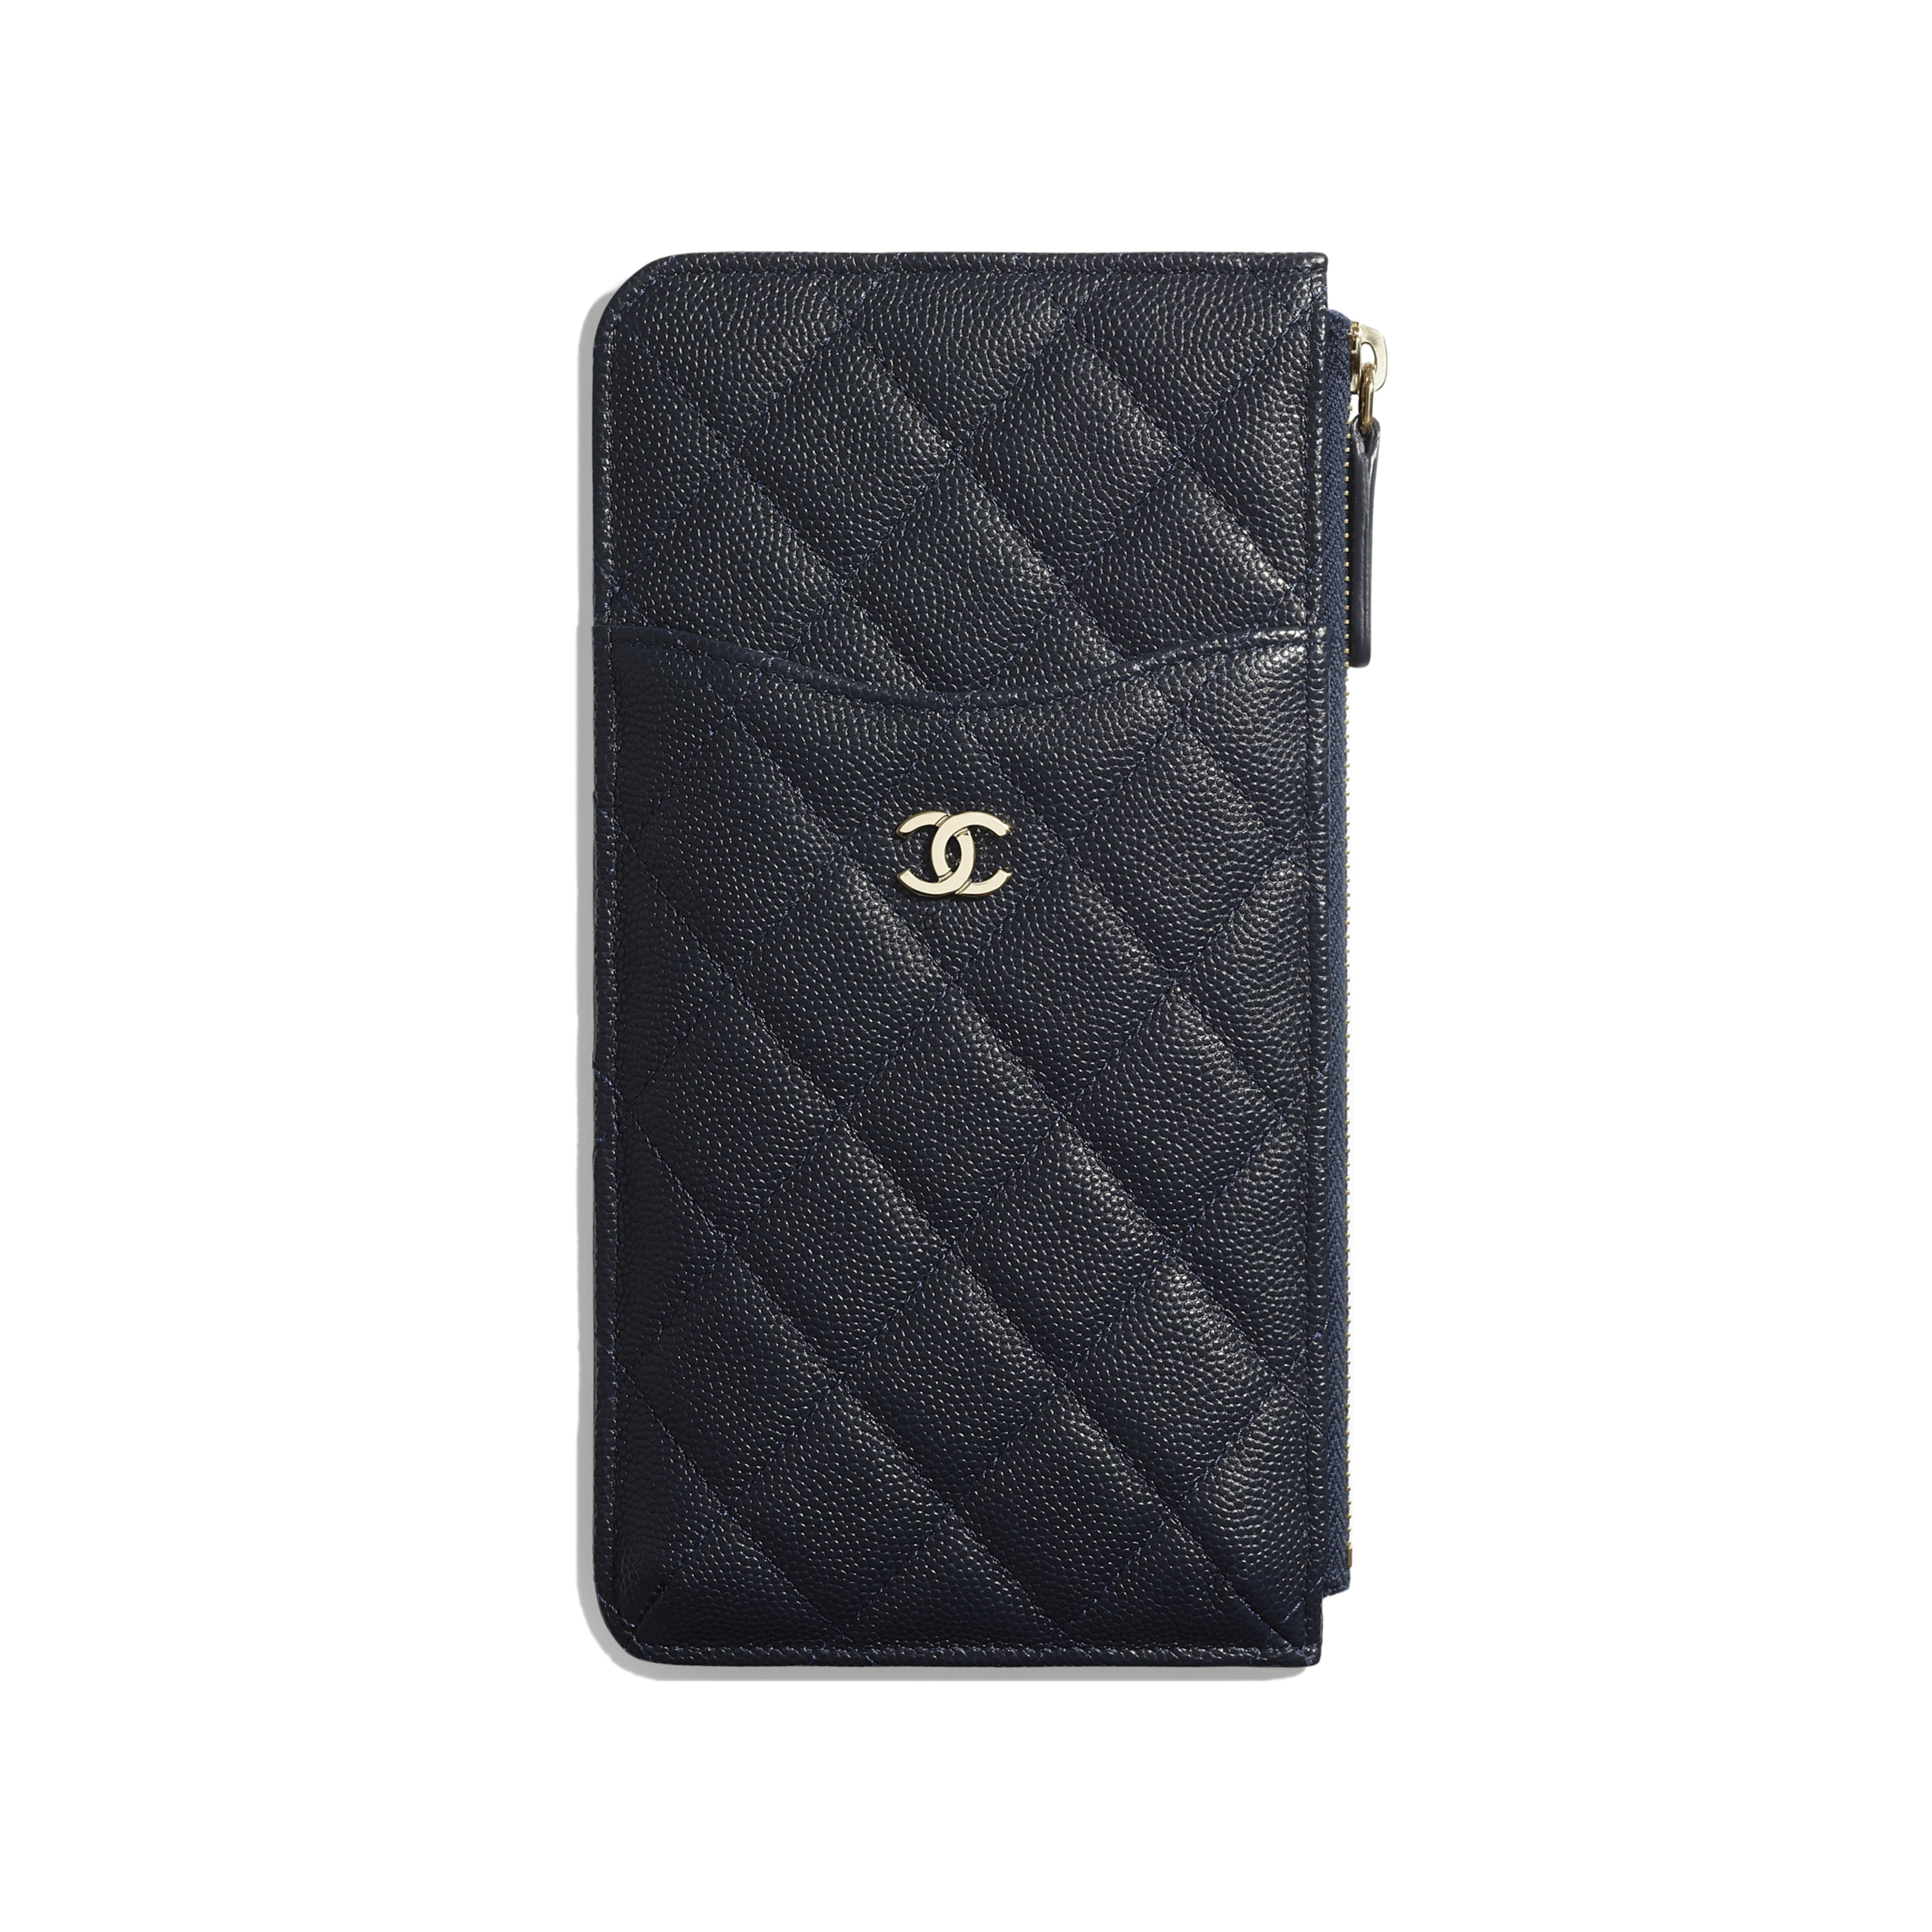 Classic Pouch for iPhone - Navy Blue - Grained Calfskin & Gold-Tone Metal - Default view - see full sized version